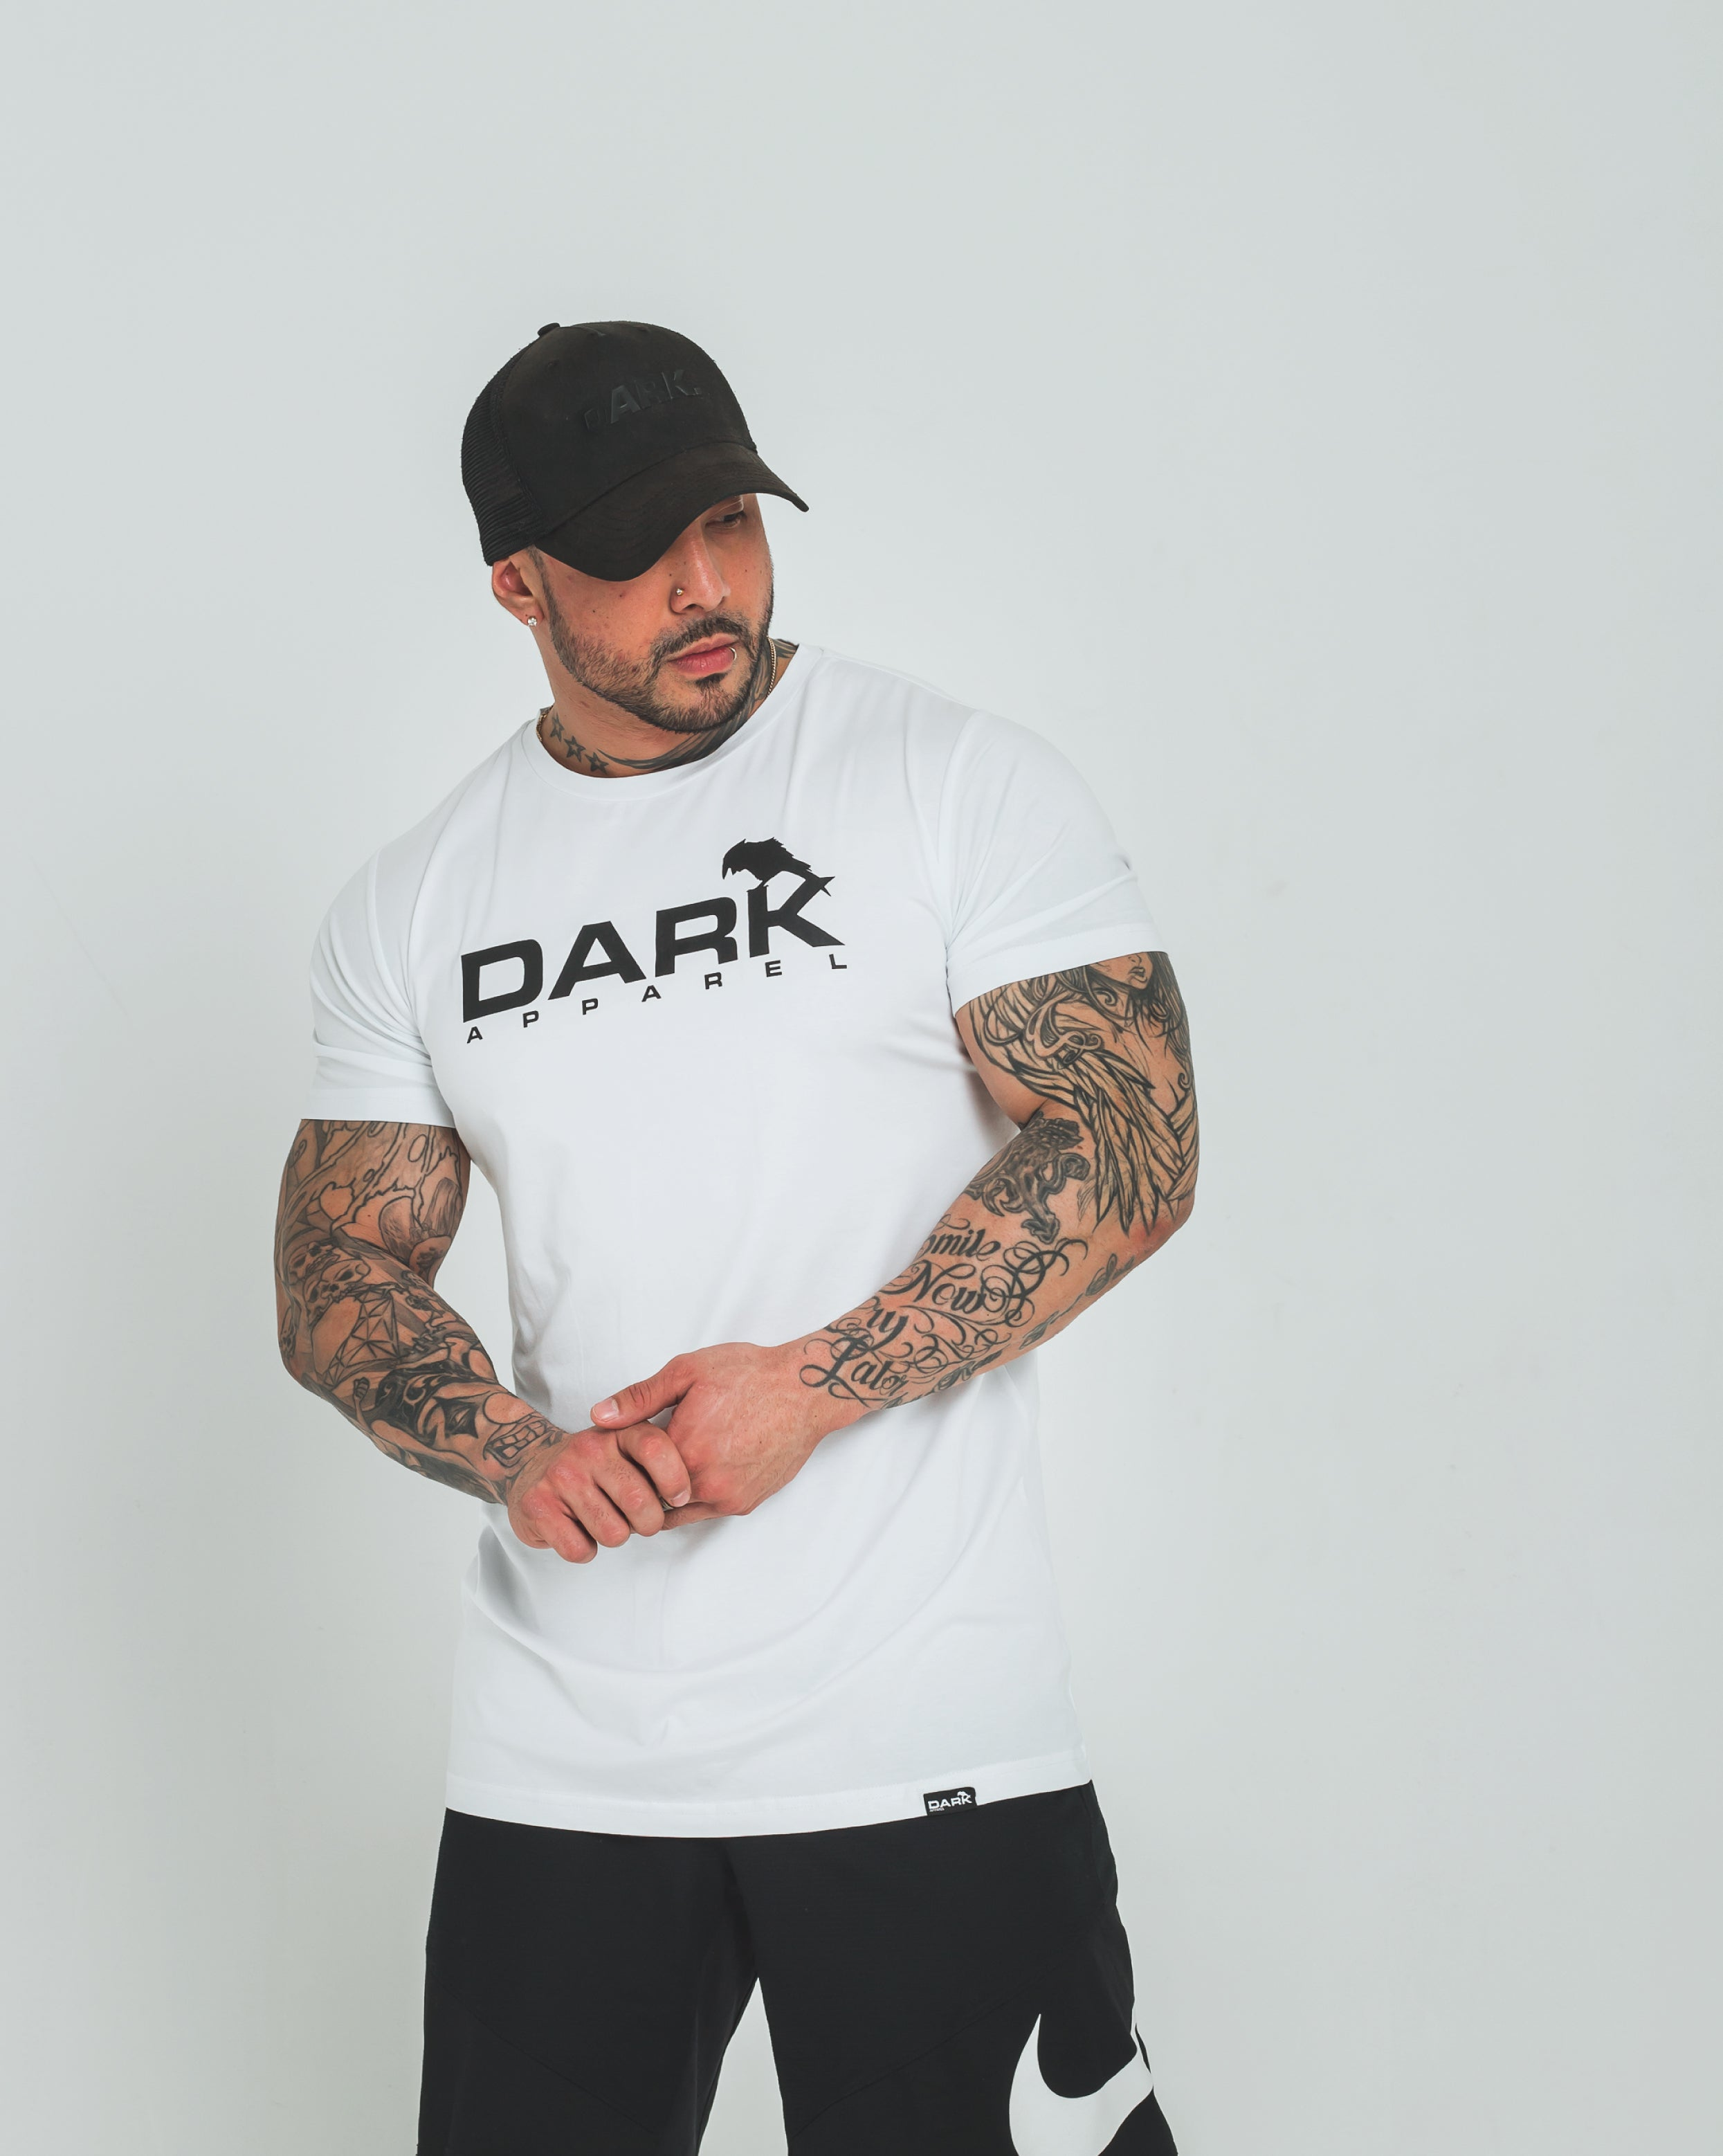 Dark Apparel white tee